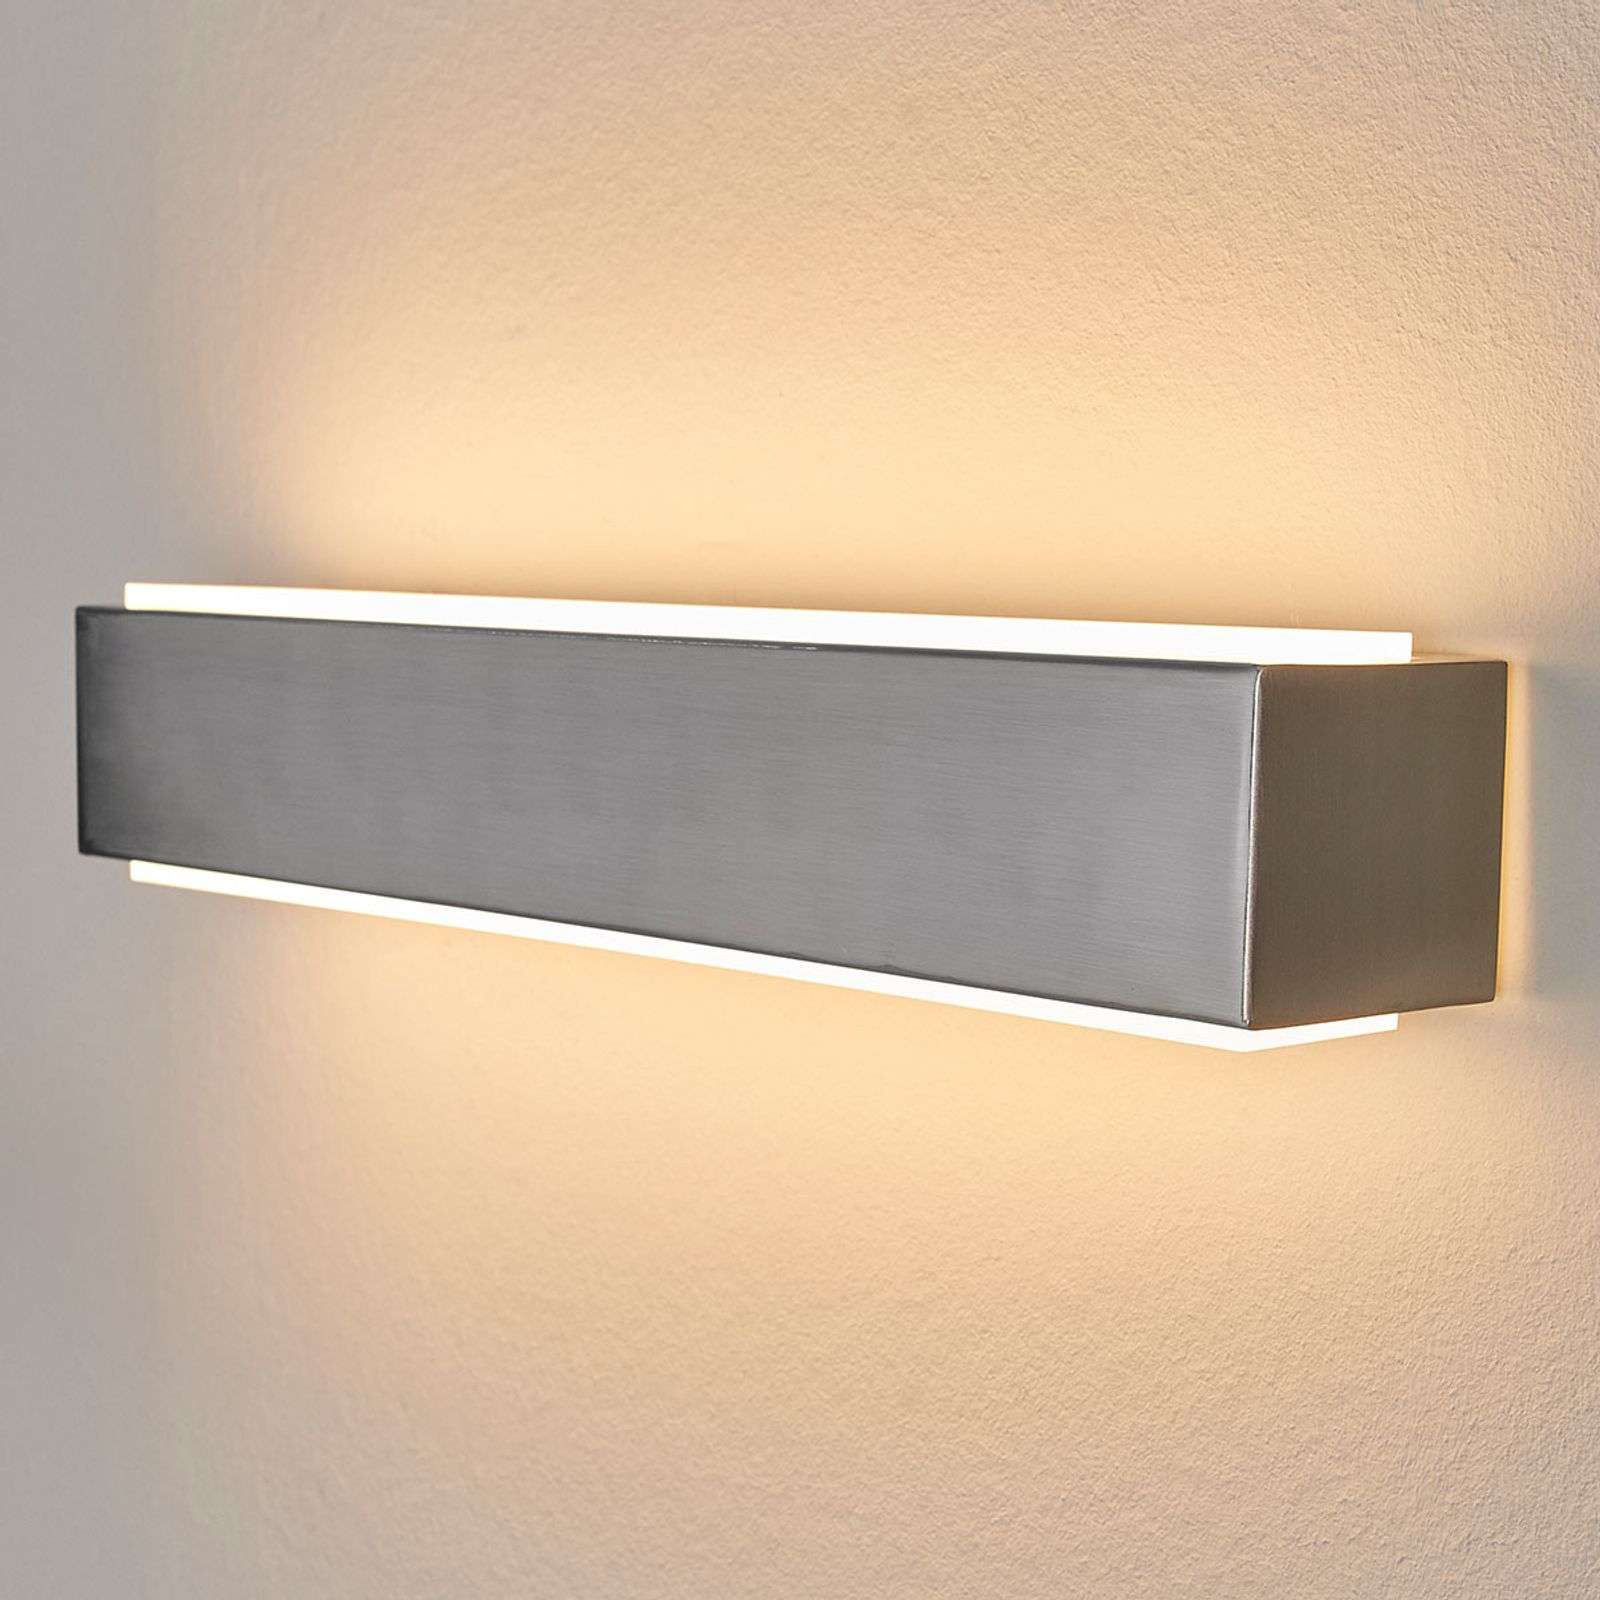 Quentis - applique LED di metallo, 35 cm